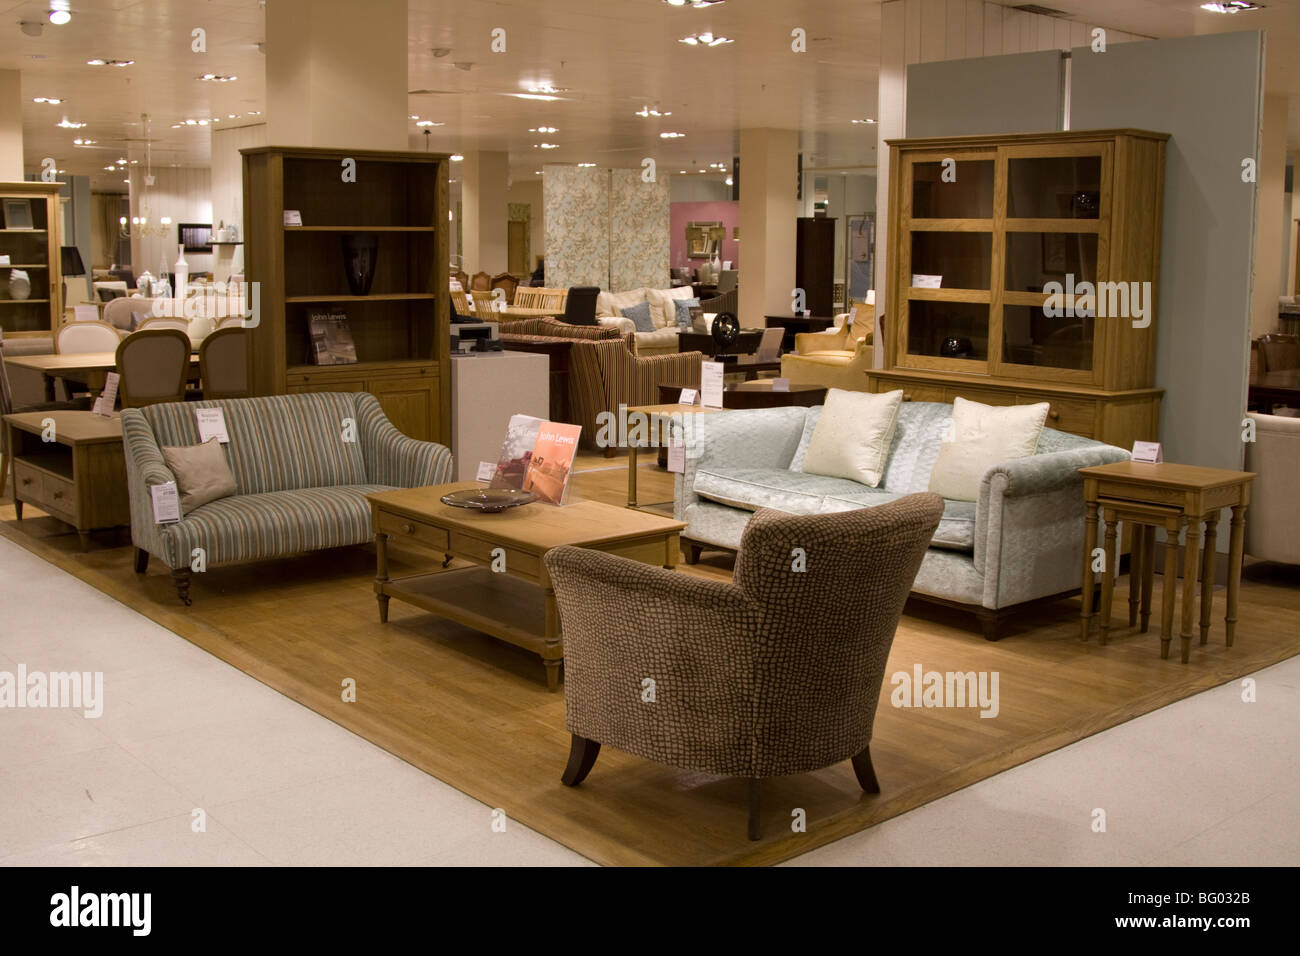 Furniture section john lewis flagship department store for Furniture john lewis